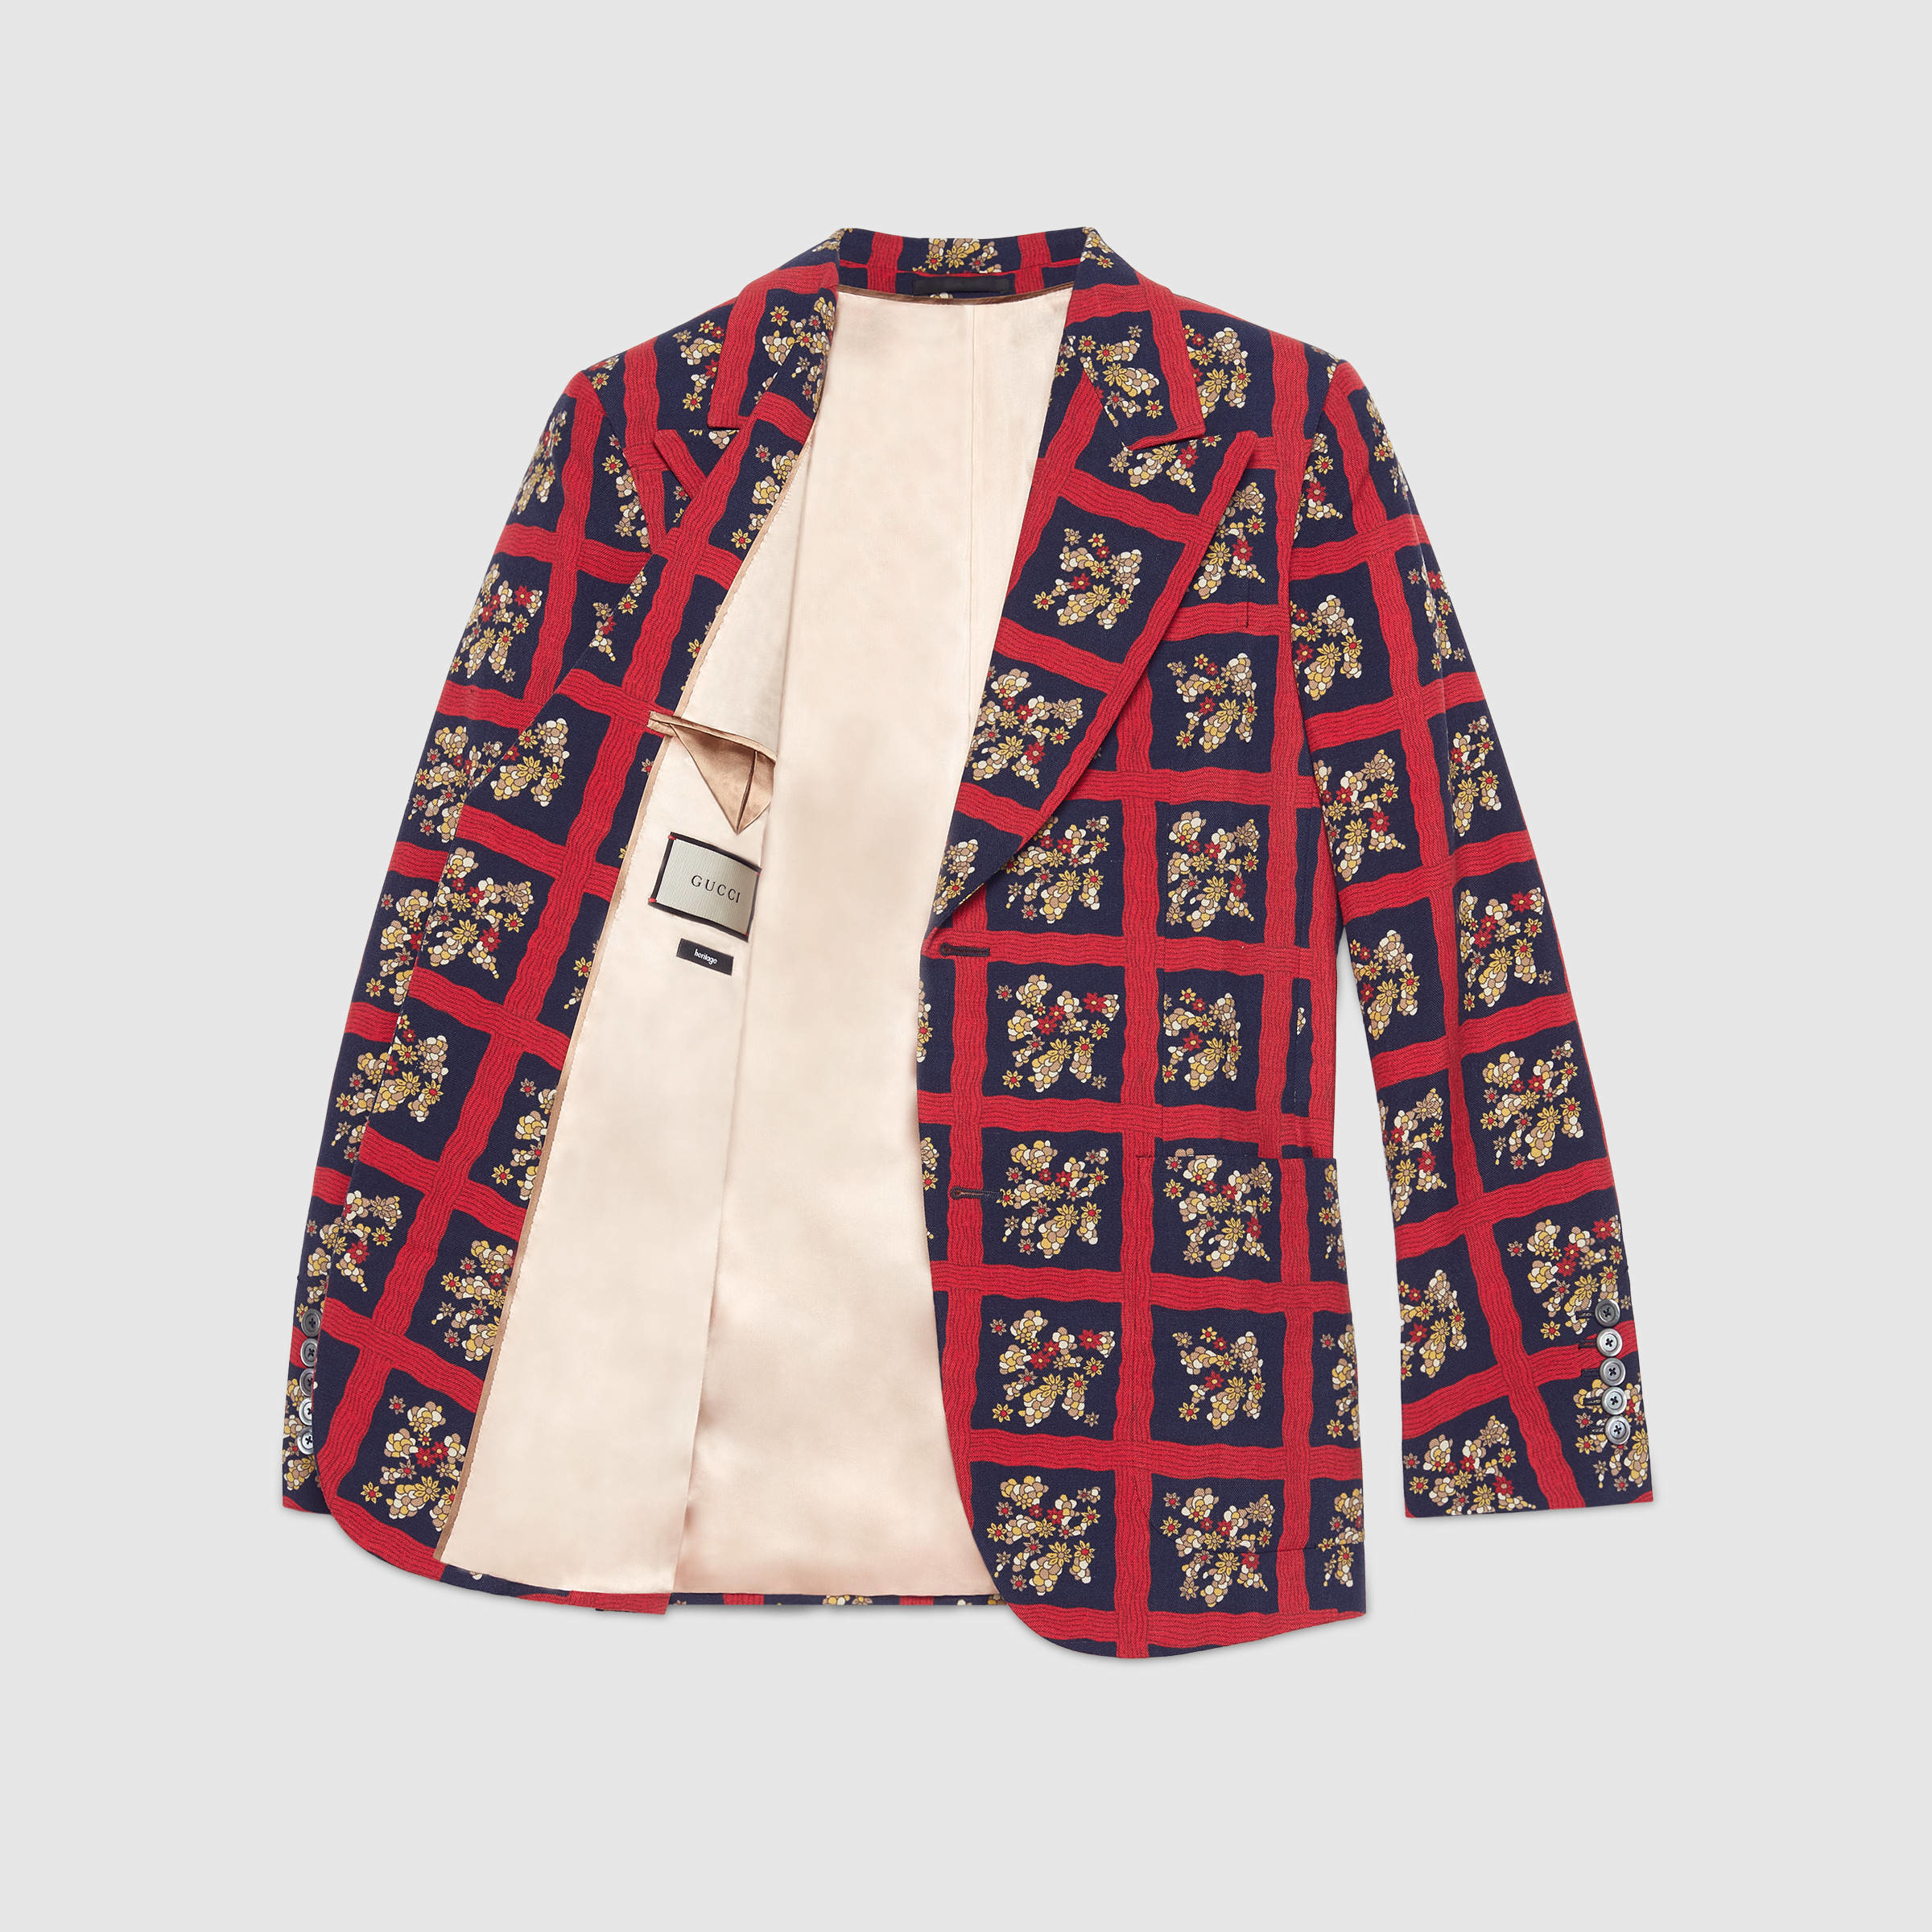 Gucci Heritage Floral Check Print Jacket for Men